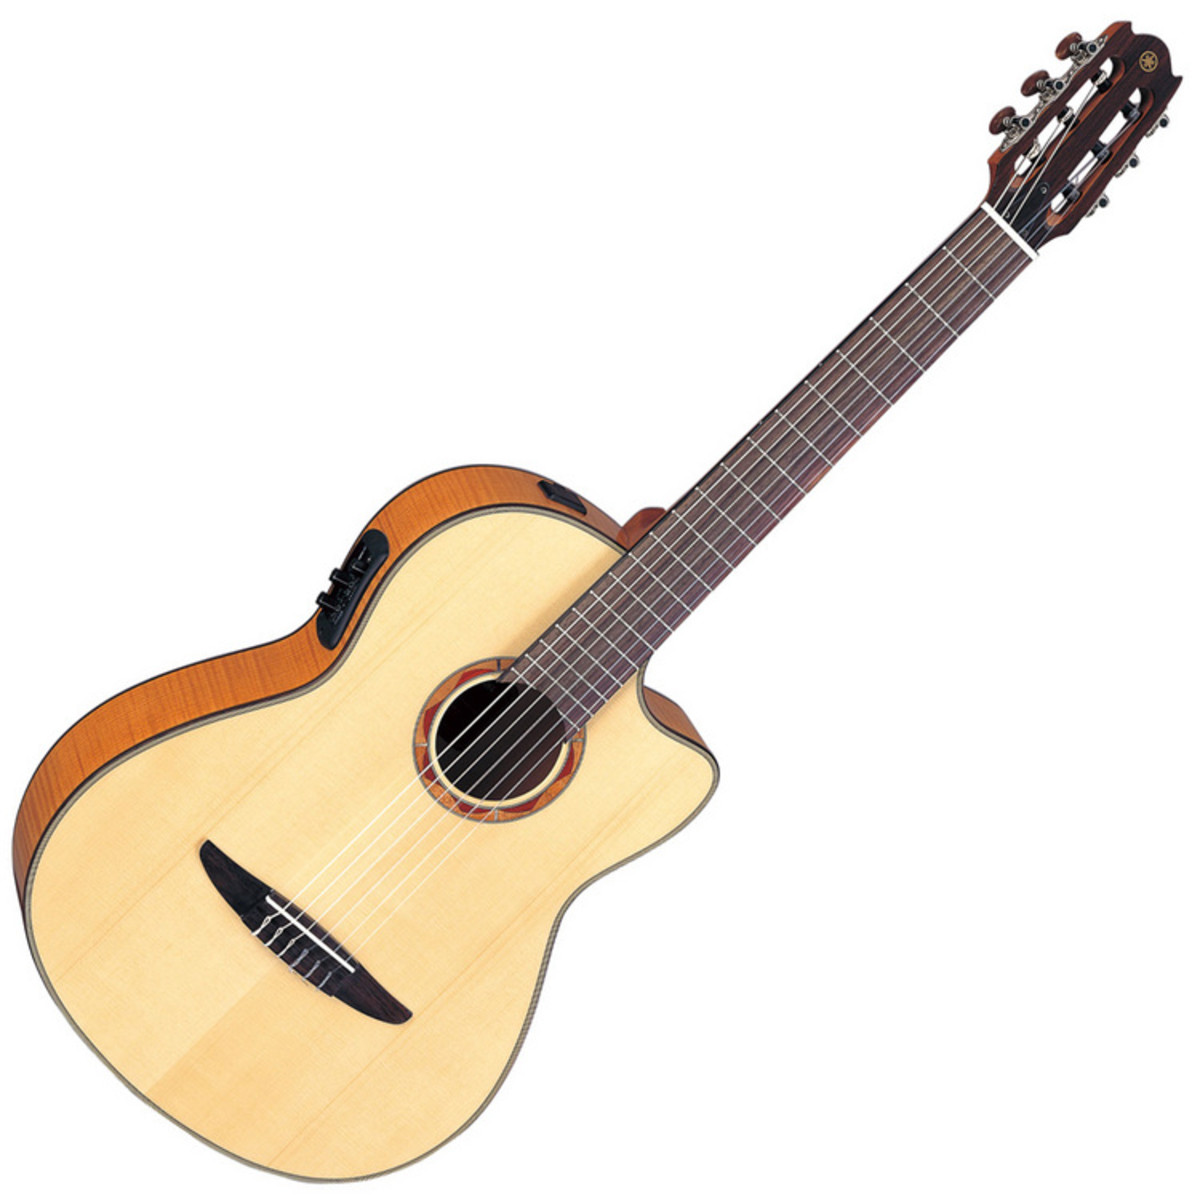 yamaha ncx900fm guitare electro acoustique. Black Bedroom Furniture Sets. Home Design Ideas